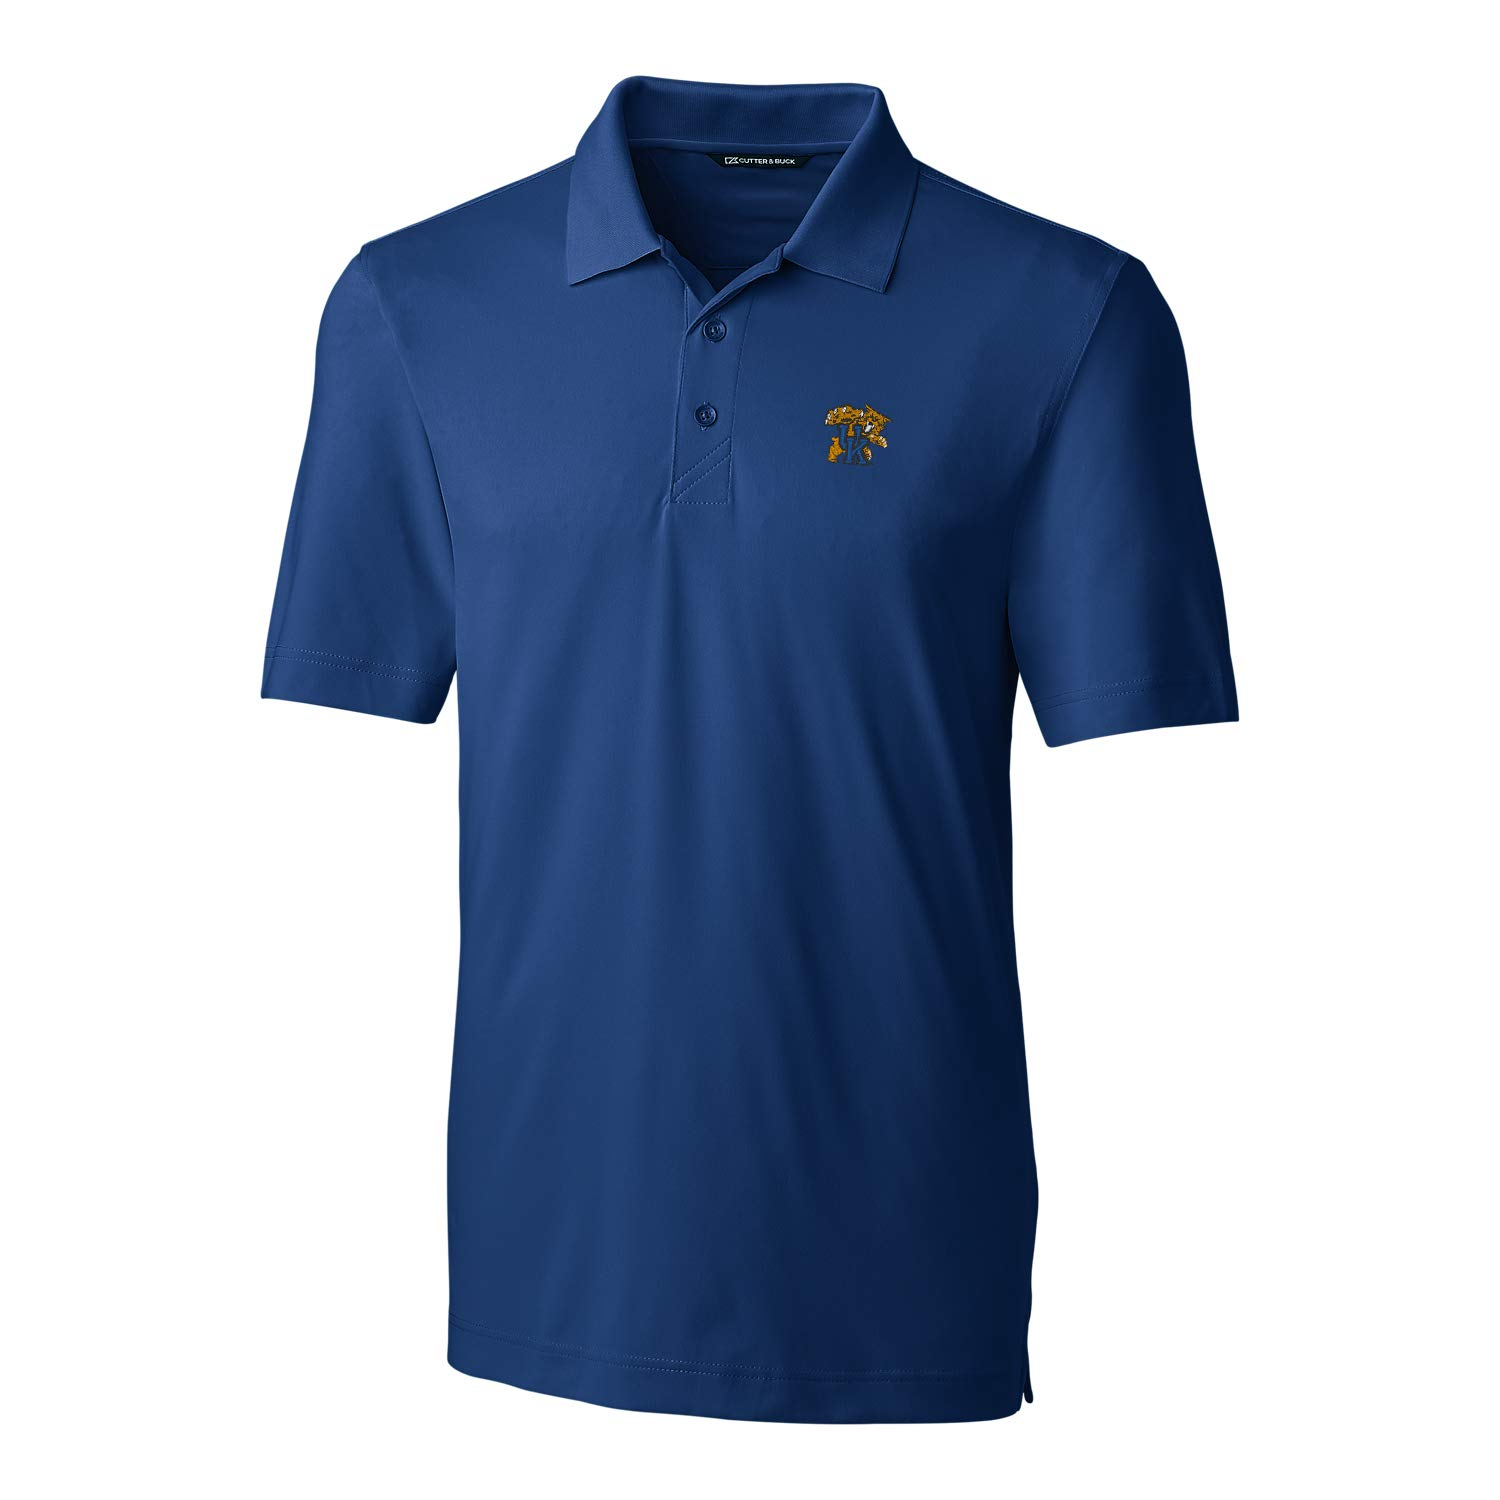 NCAA Kentucky Wildcats Short Sleeve Solid Forge Polo 3X-Large Tour Blue